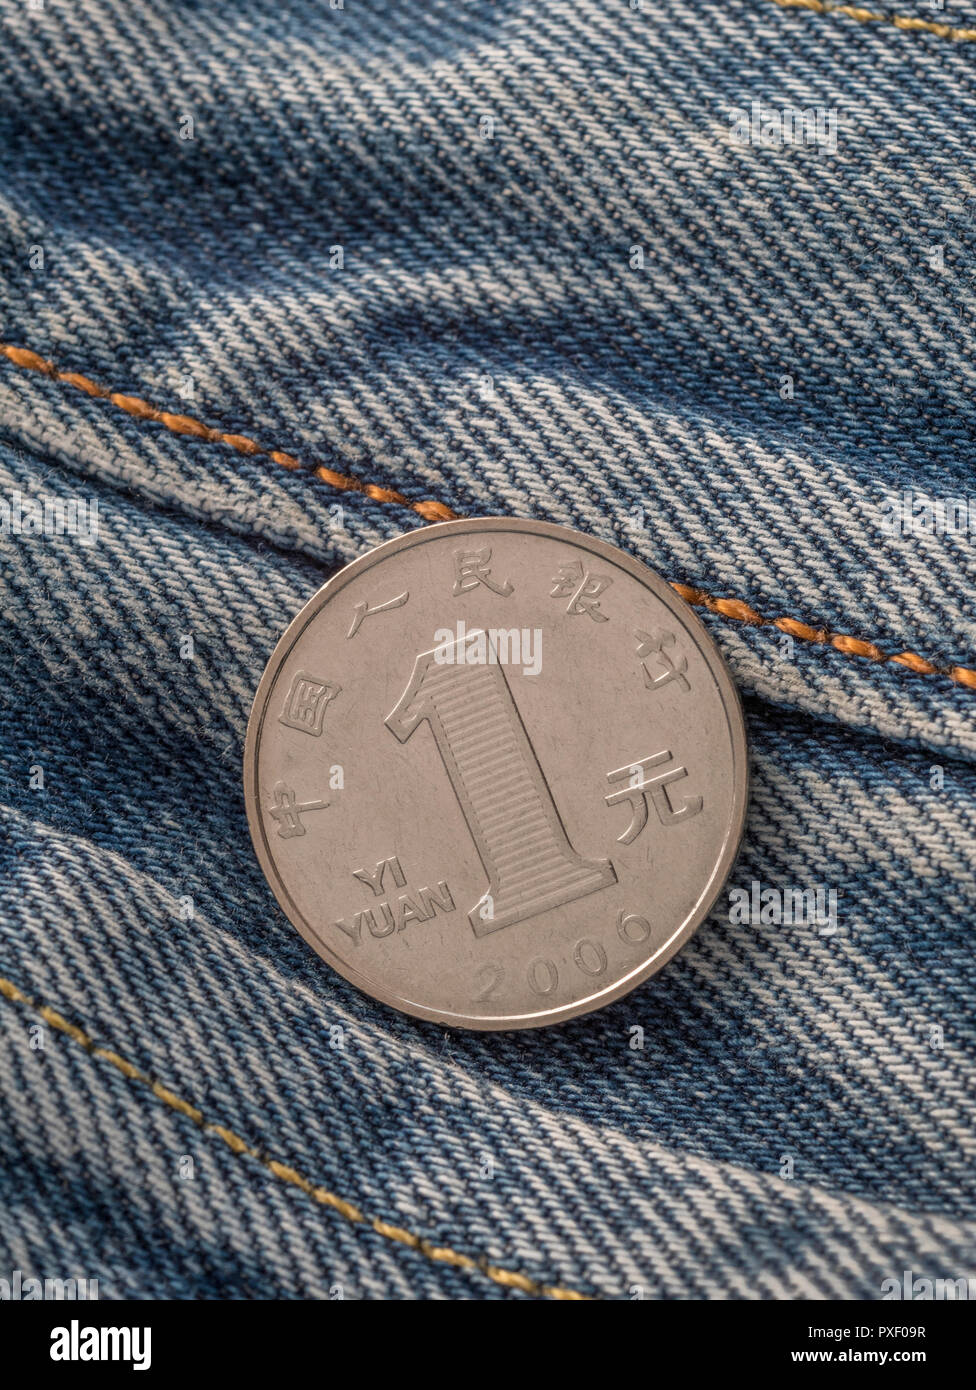 Chinese Yuan / Renminbi coin with pocket - metaphor for personal earnings, Chinese wages, wage levels. - Stock Image